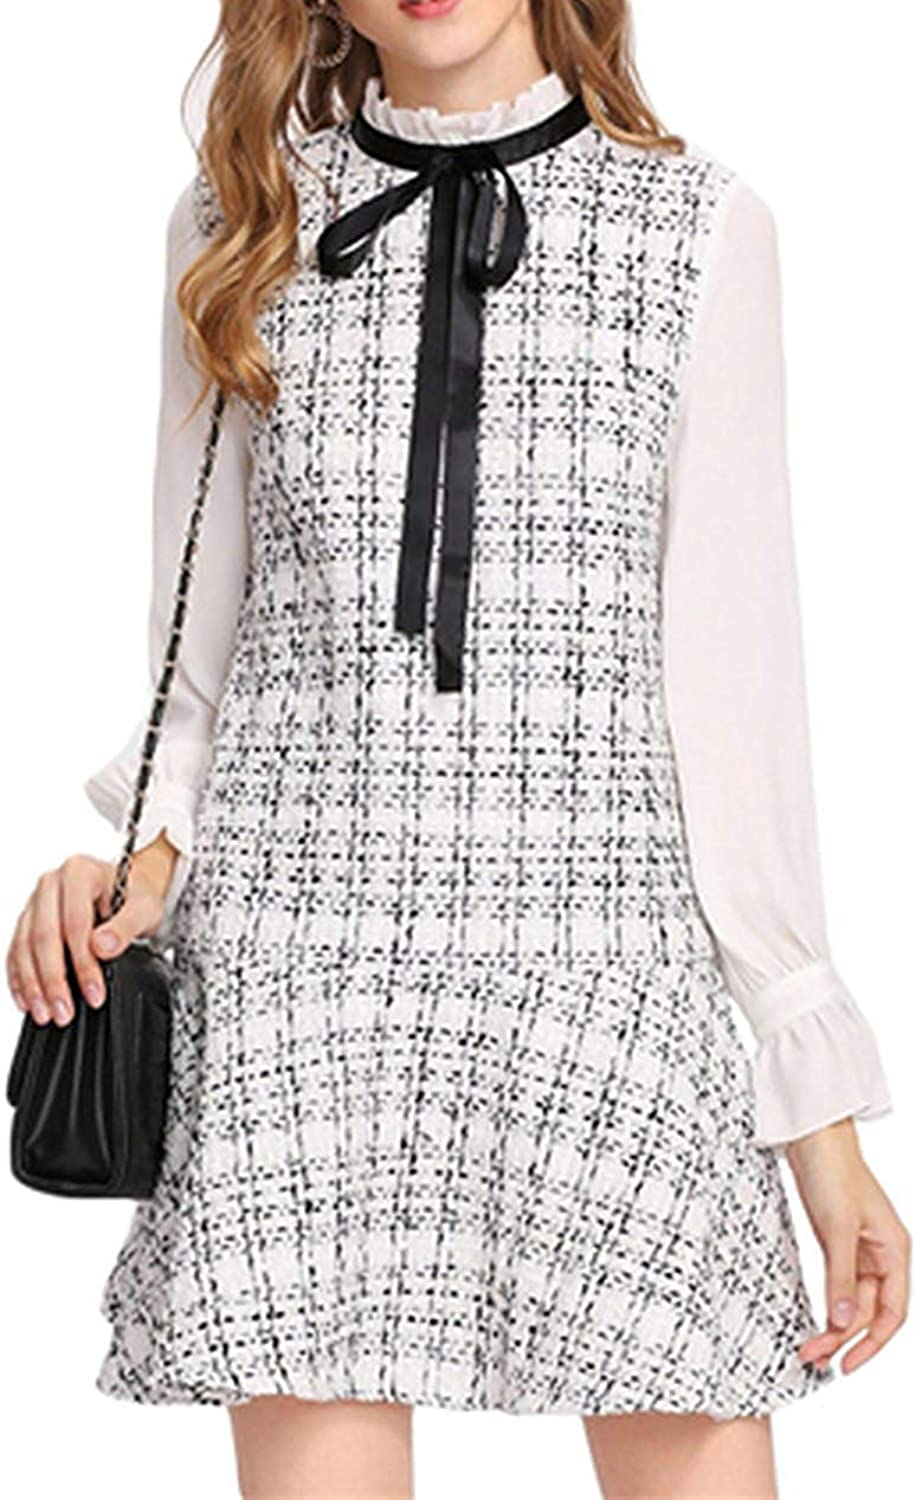 Henraly Black and White Women DressFrilled Neck Drop Waist Tweed Dress Autumn Long Sleeve Tie Neck A Line